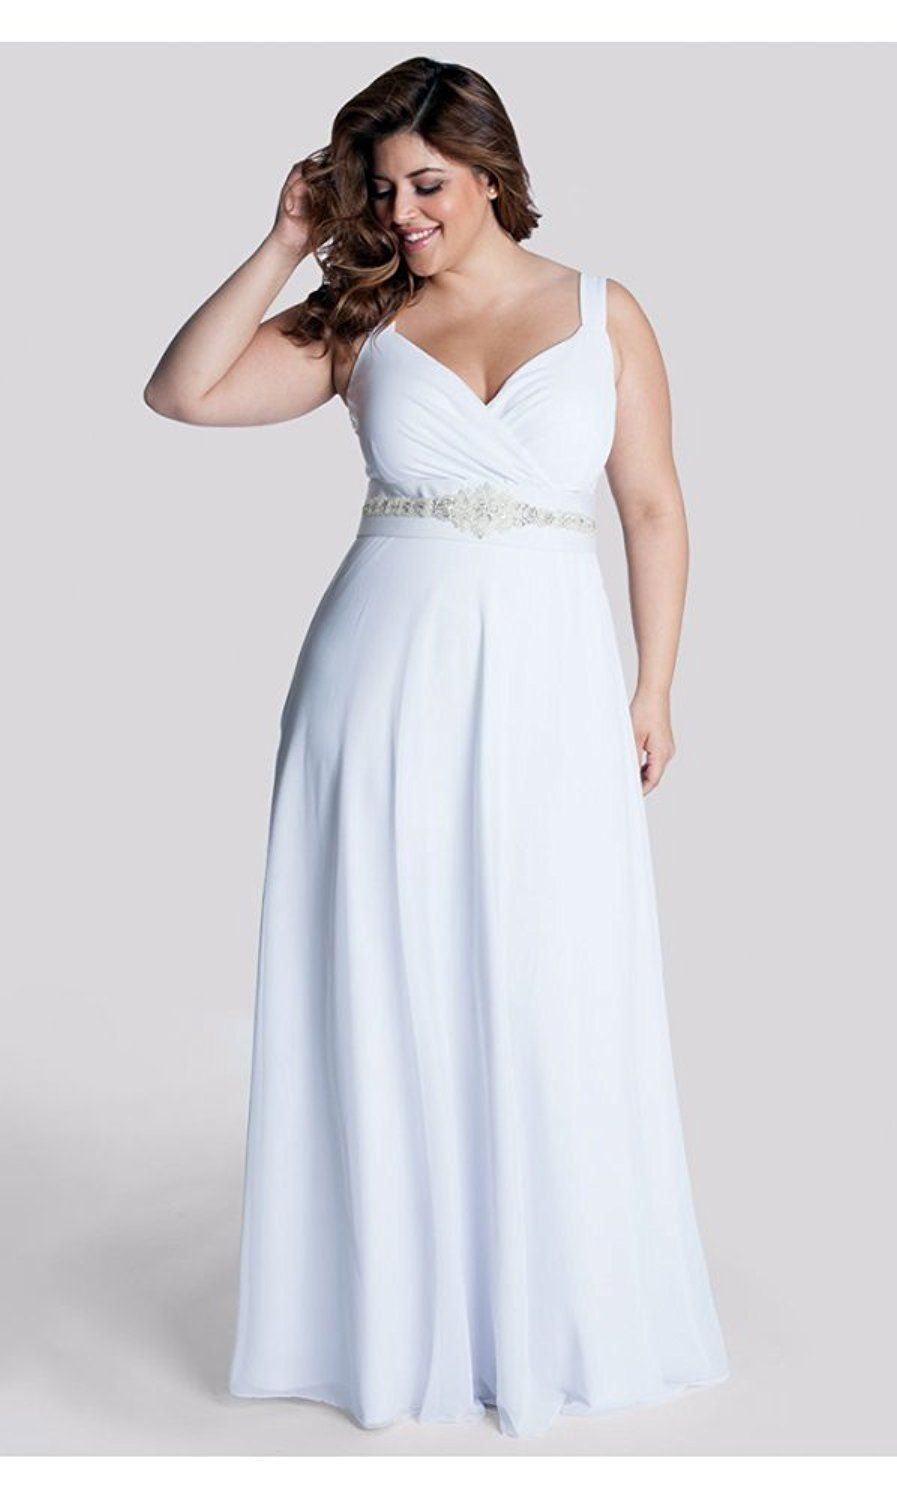 Plus size white wedding dresses  IGIGI Womenus Plus Size White Diamonds Wedding Gown   blanco